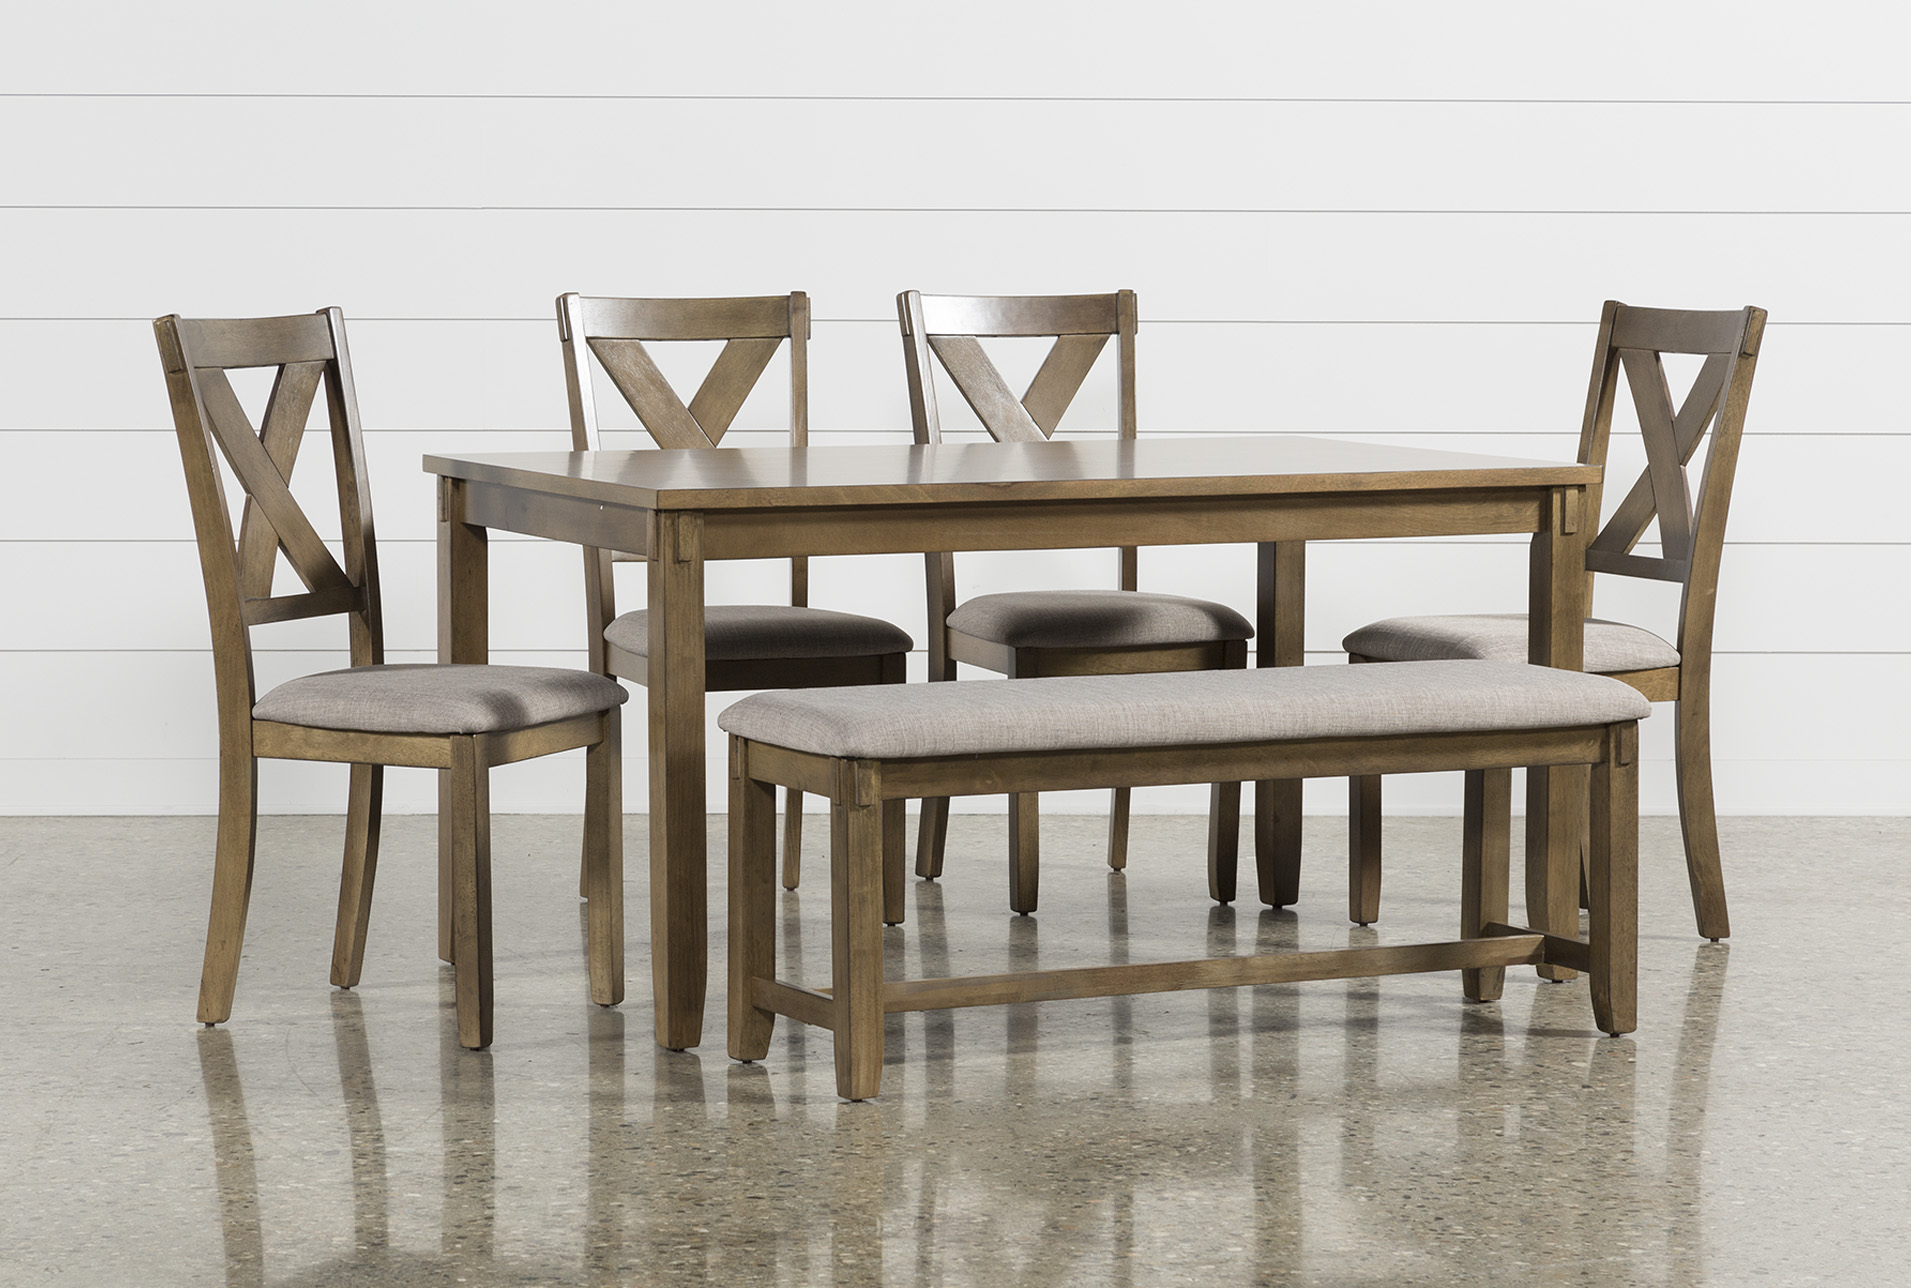 Charmant Kirsten 6 Piece Dining Set (Qty: 1) Has Been Successfully Added To Your  Cart.